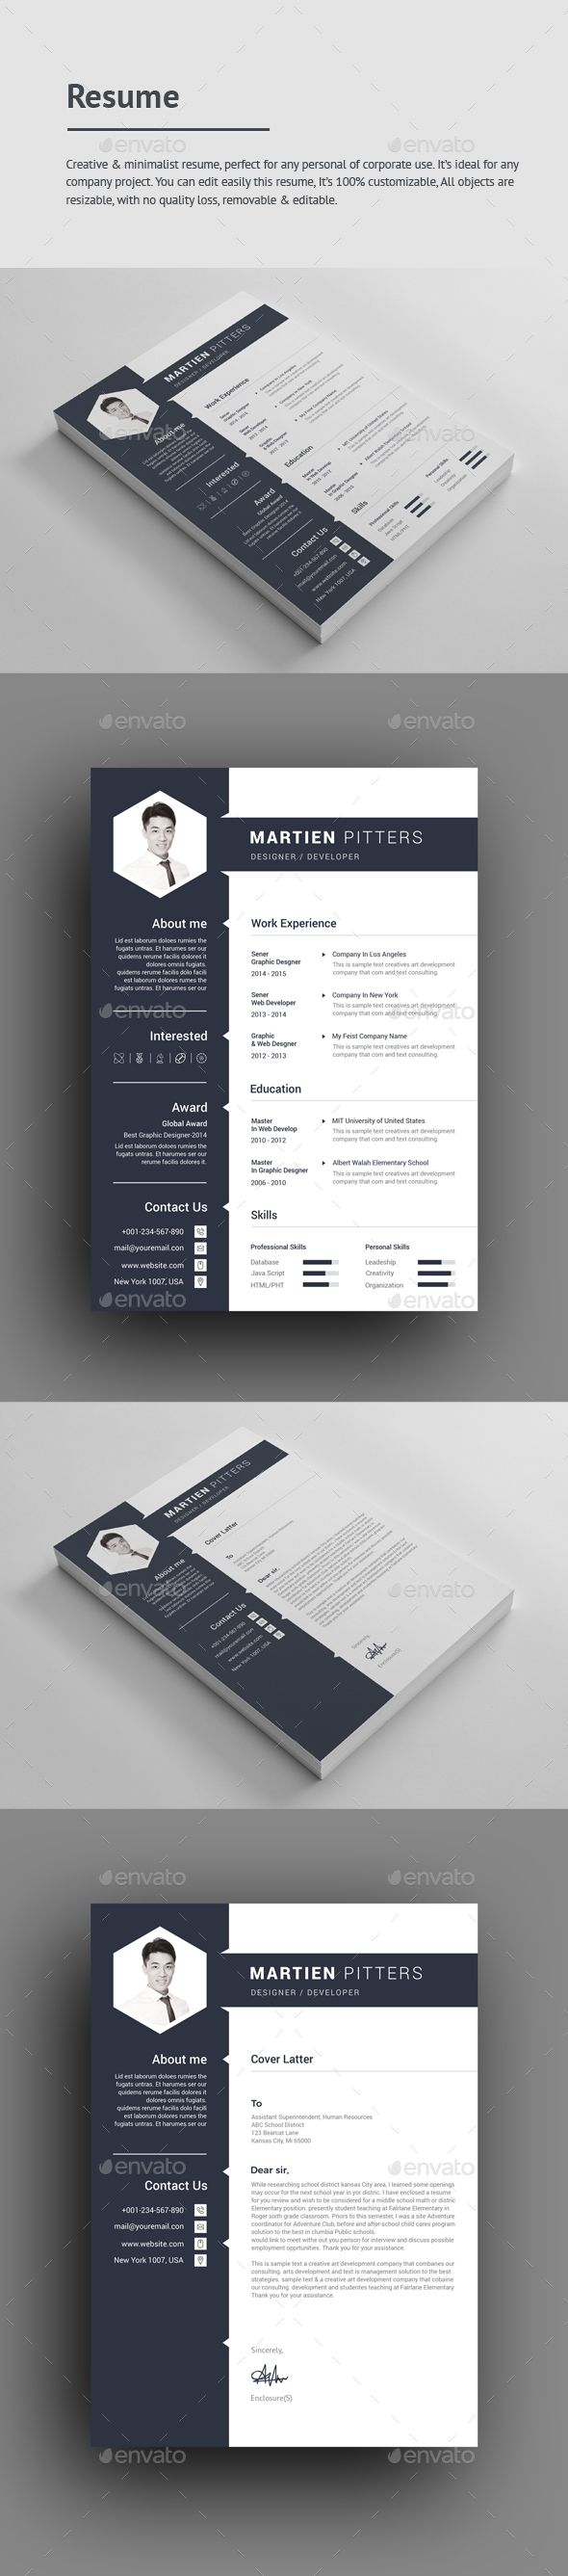 resume file information a4 size print dimension with bleed   guidelines  well layered organised